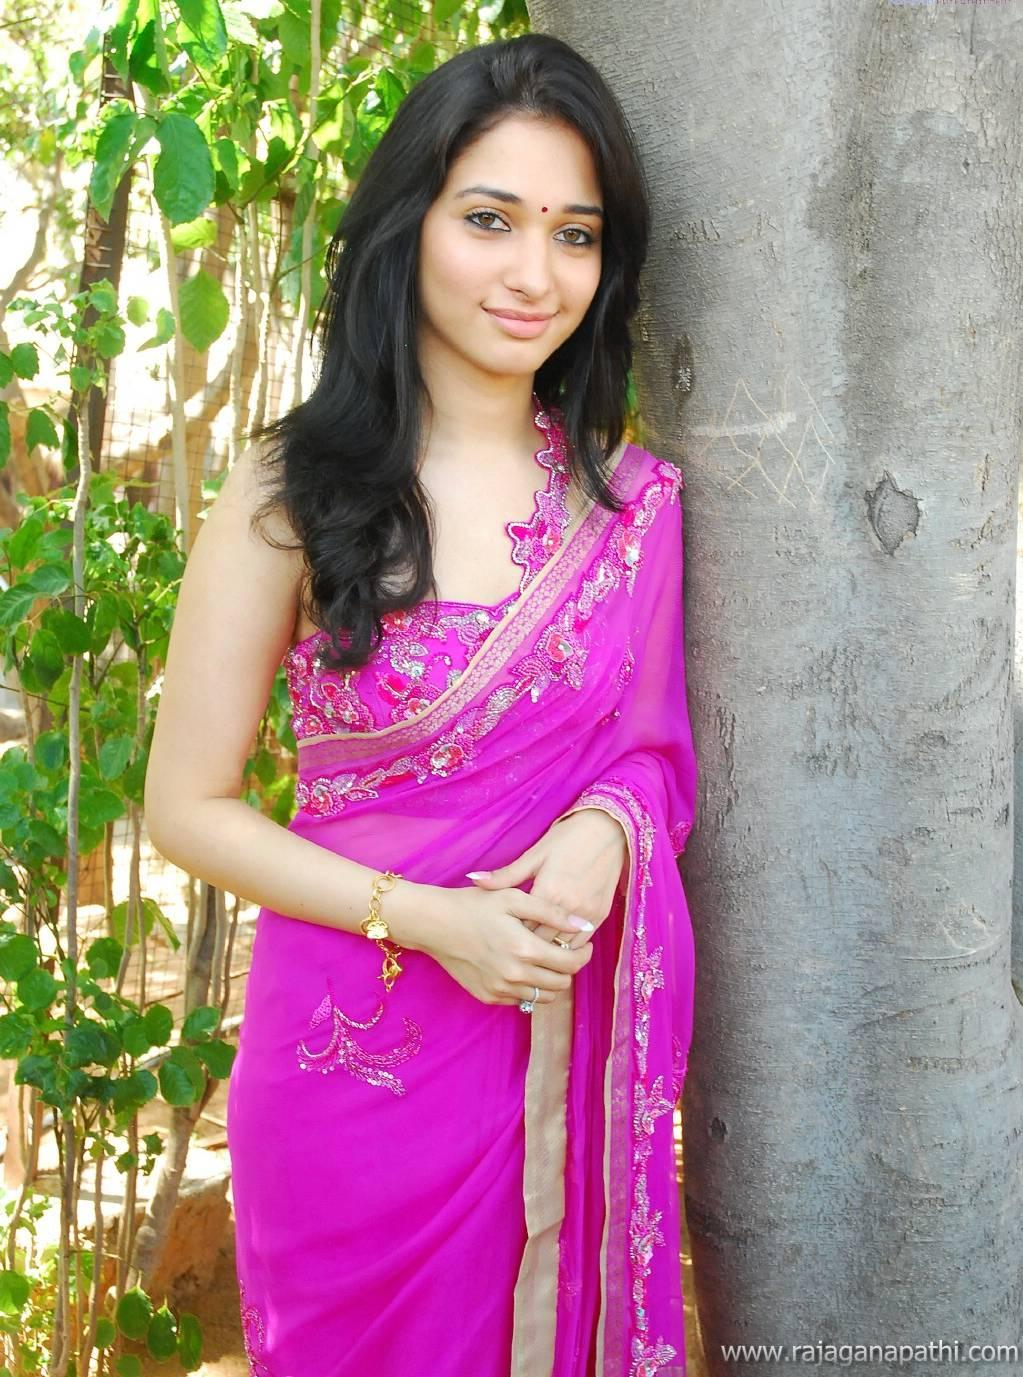 SOUTH ACTRESS TAMANNA BHATIA IN SAREE HOT LATEST PHOTO